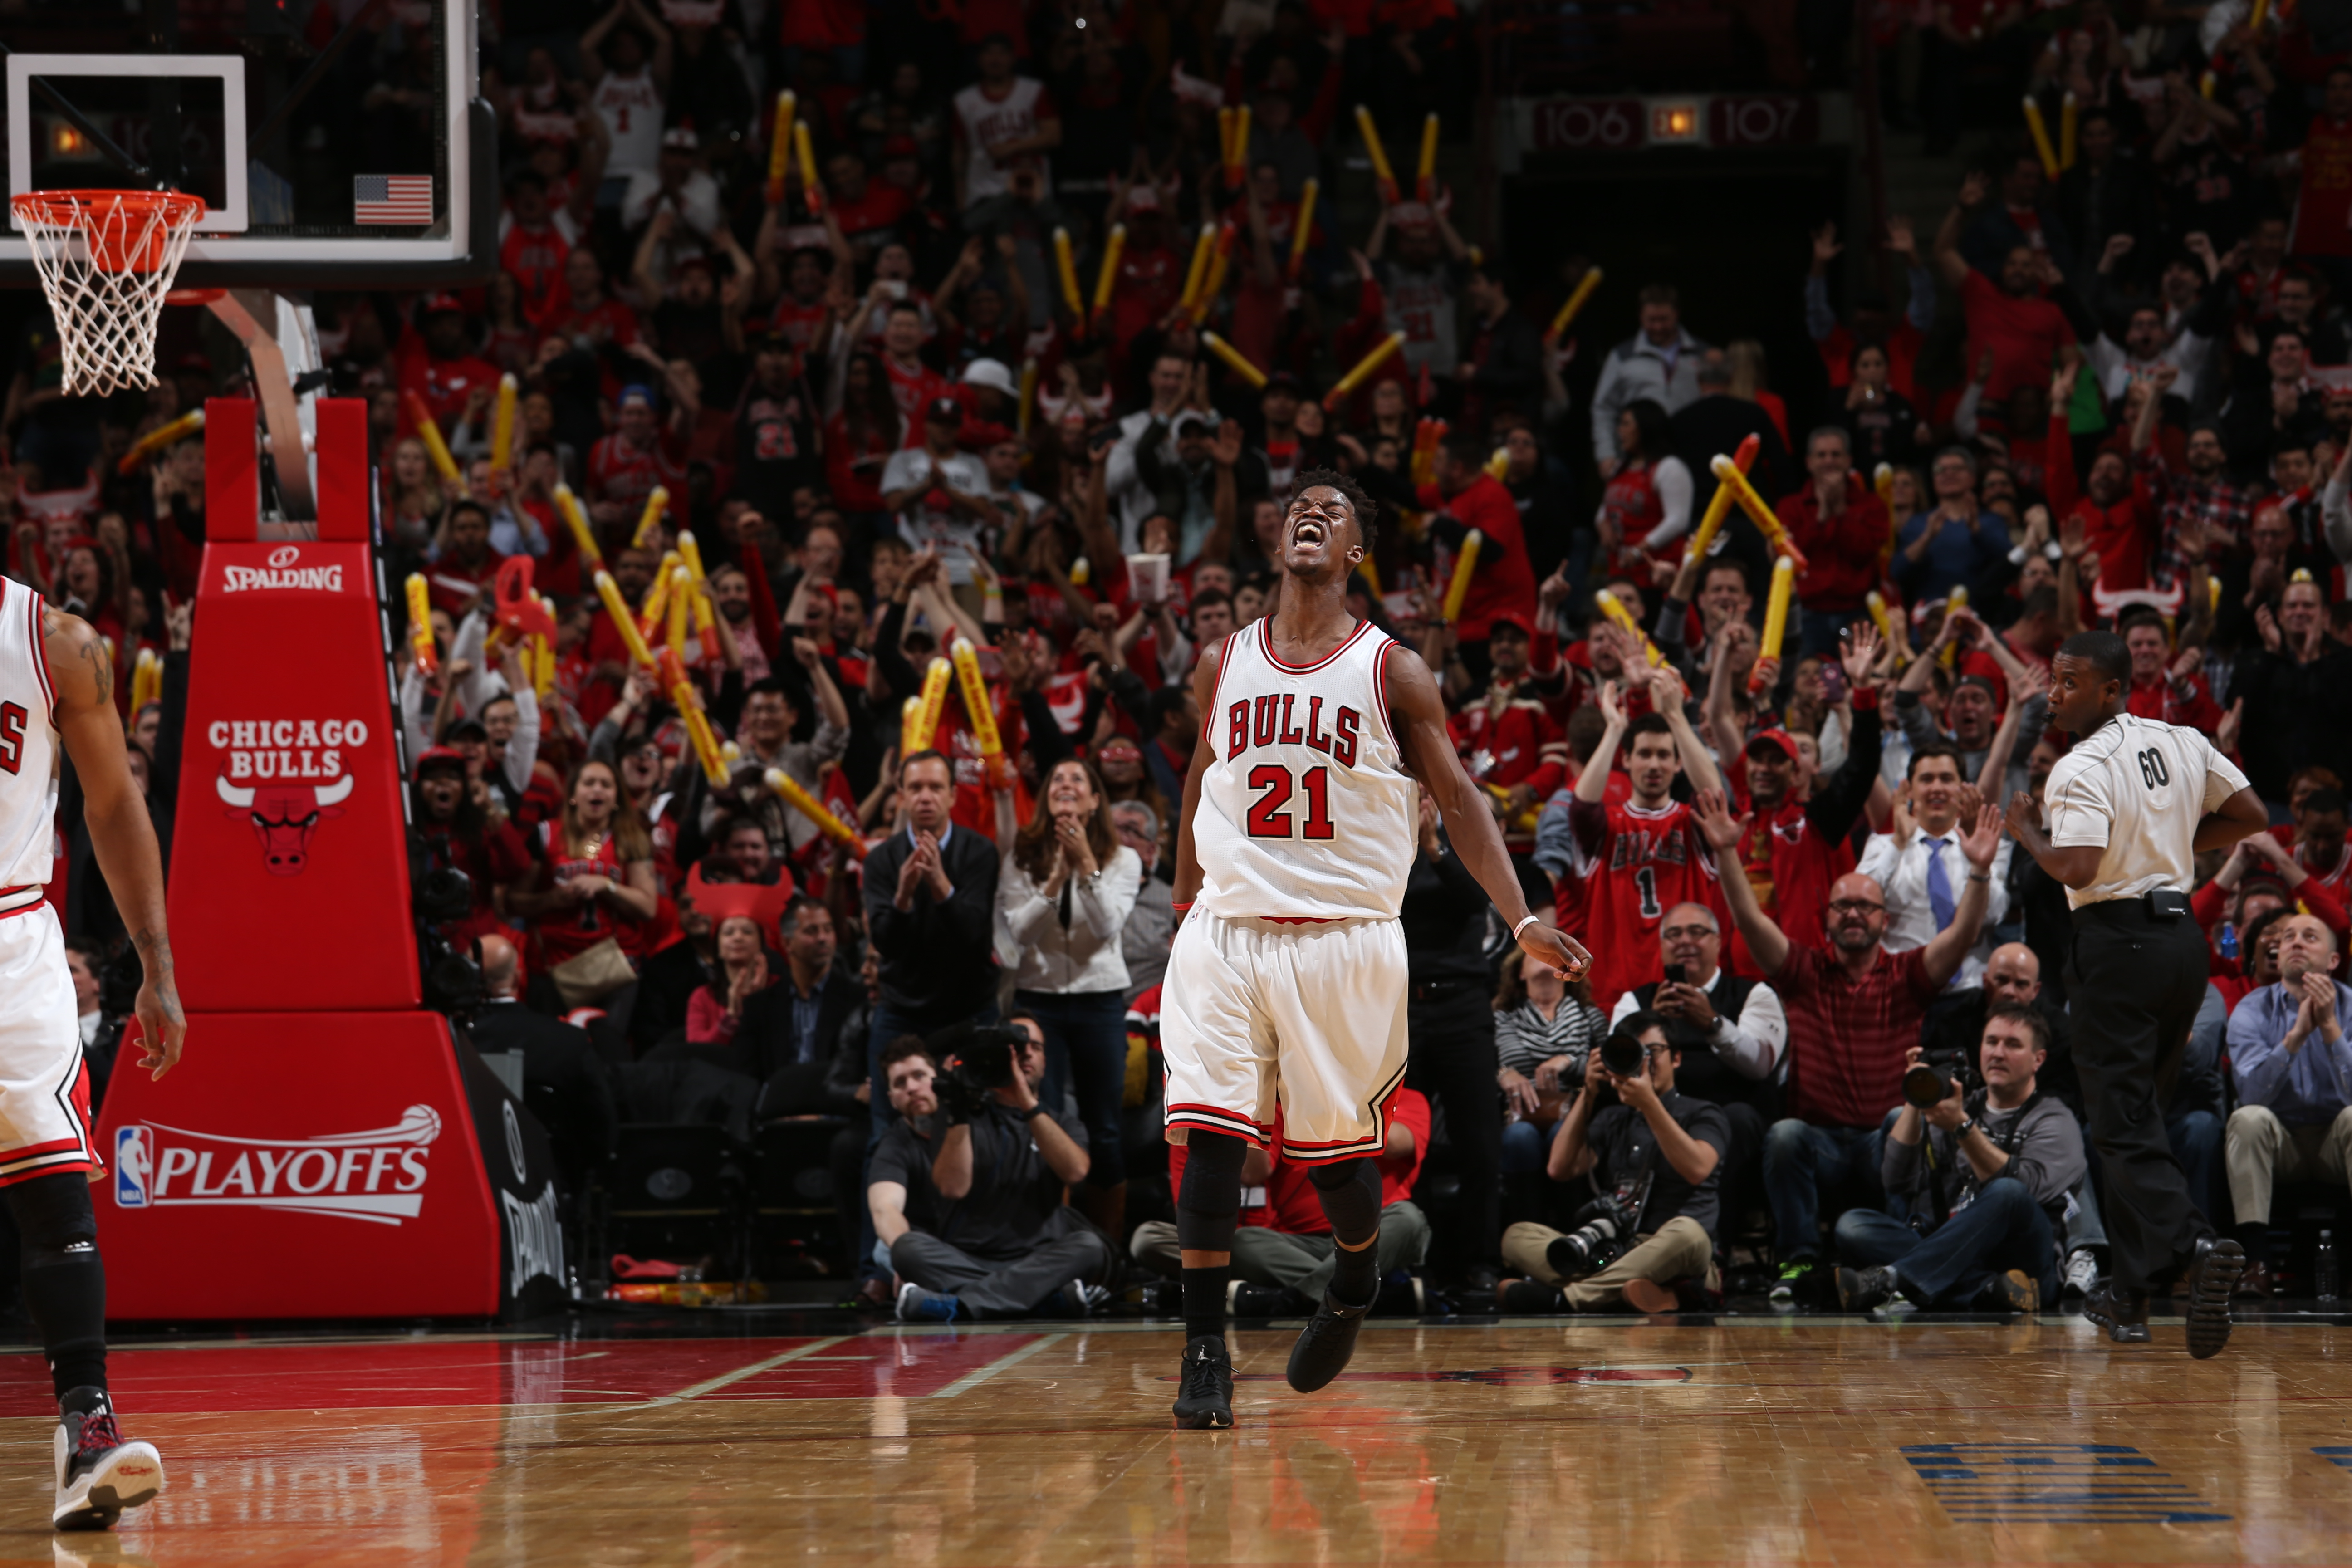 CHICAGO, IL - APRIL 20:  Jimmy Butler #21 of the Chicago Bulls celebrates in Game Two of the Eastern Conference Quarterfinals against the Milwaukee Bucks during the NBA Playoffs on April 20, 2015 at the United Center in Chicago, Illinois. (Photo by Gary D